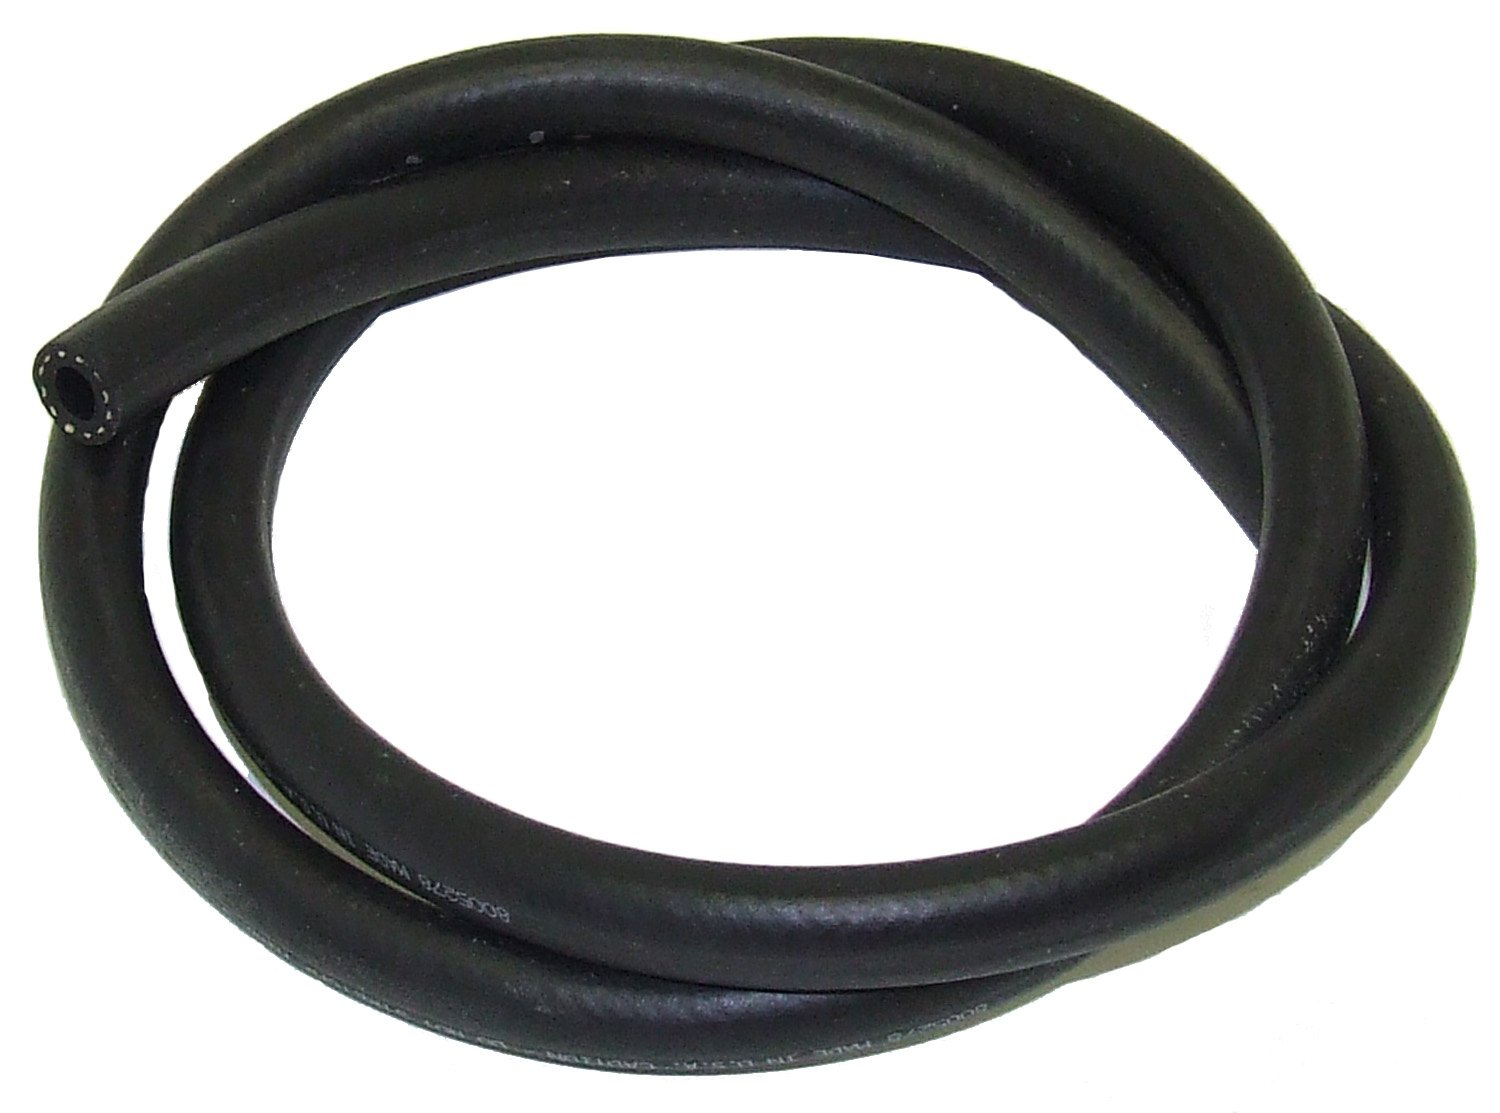 Hayden Automotive 105 Transmission Oil Cooler Hose rm-HAY-105